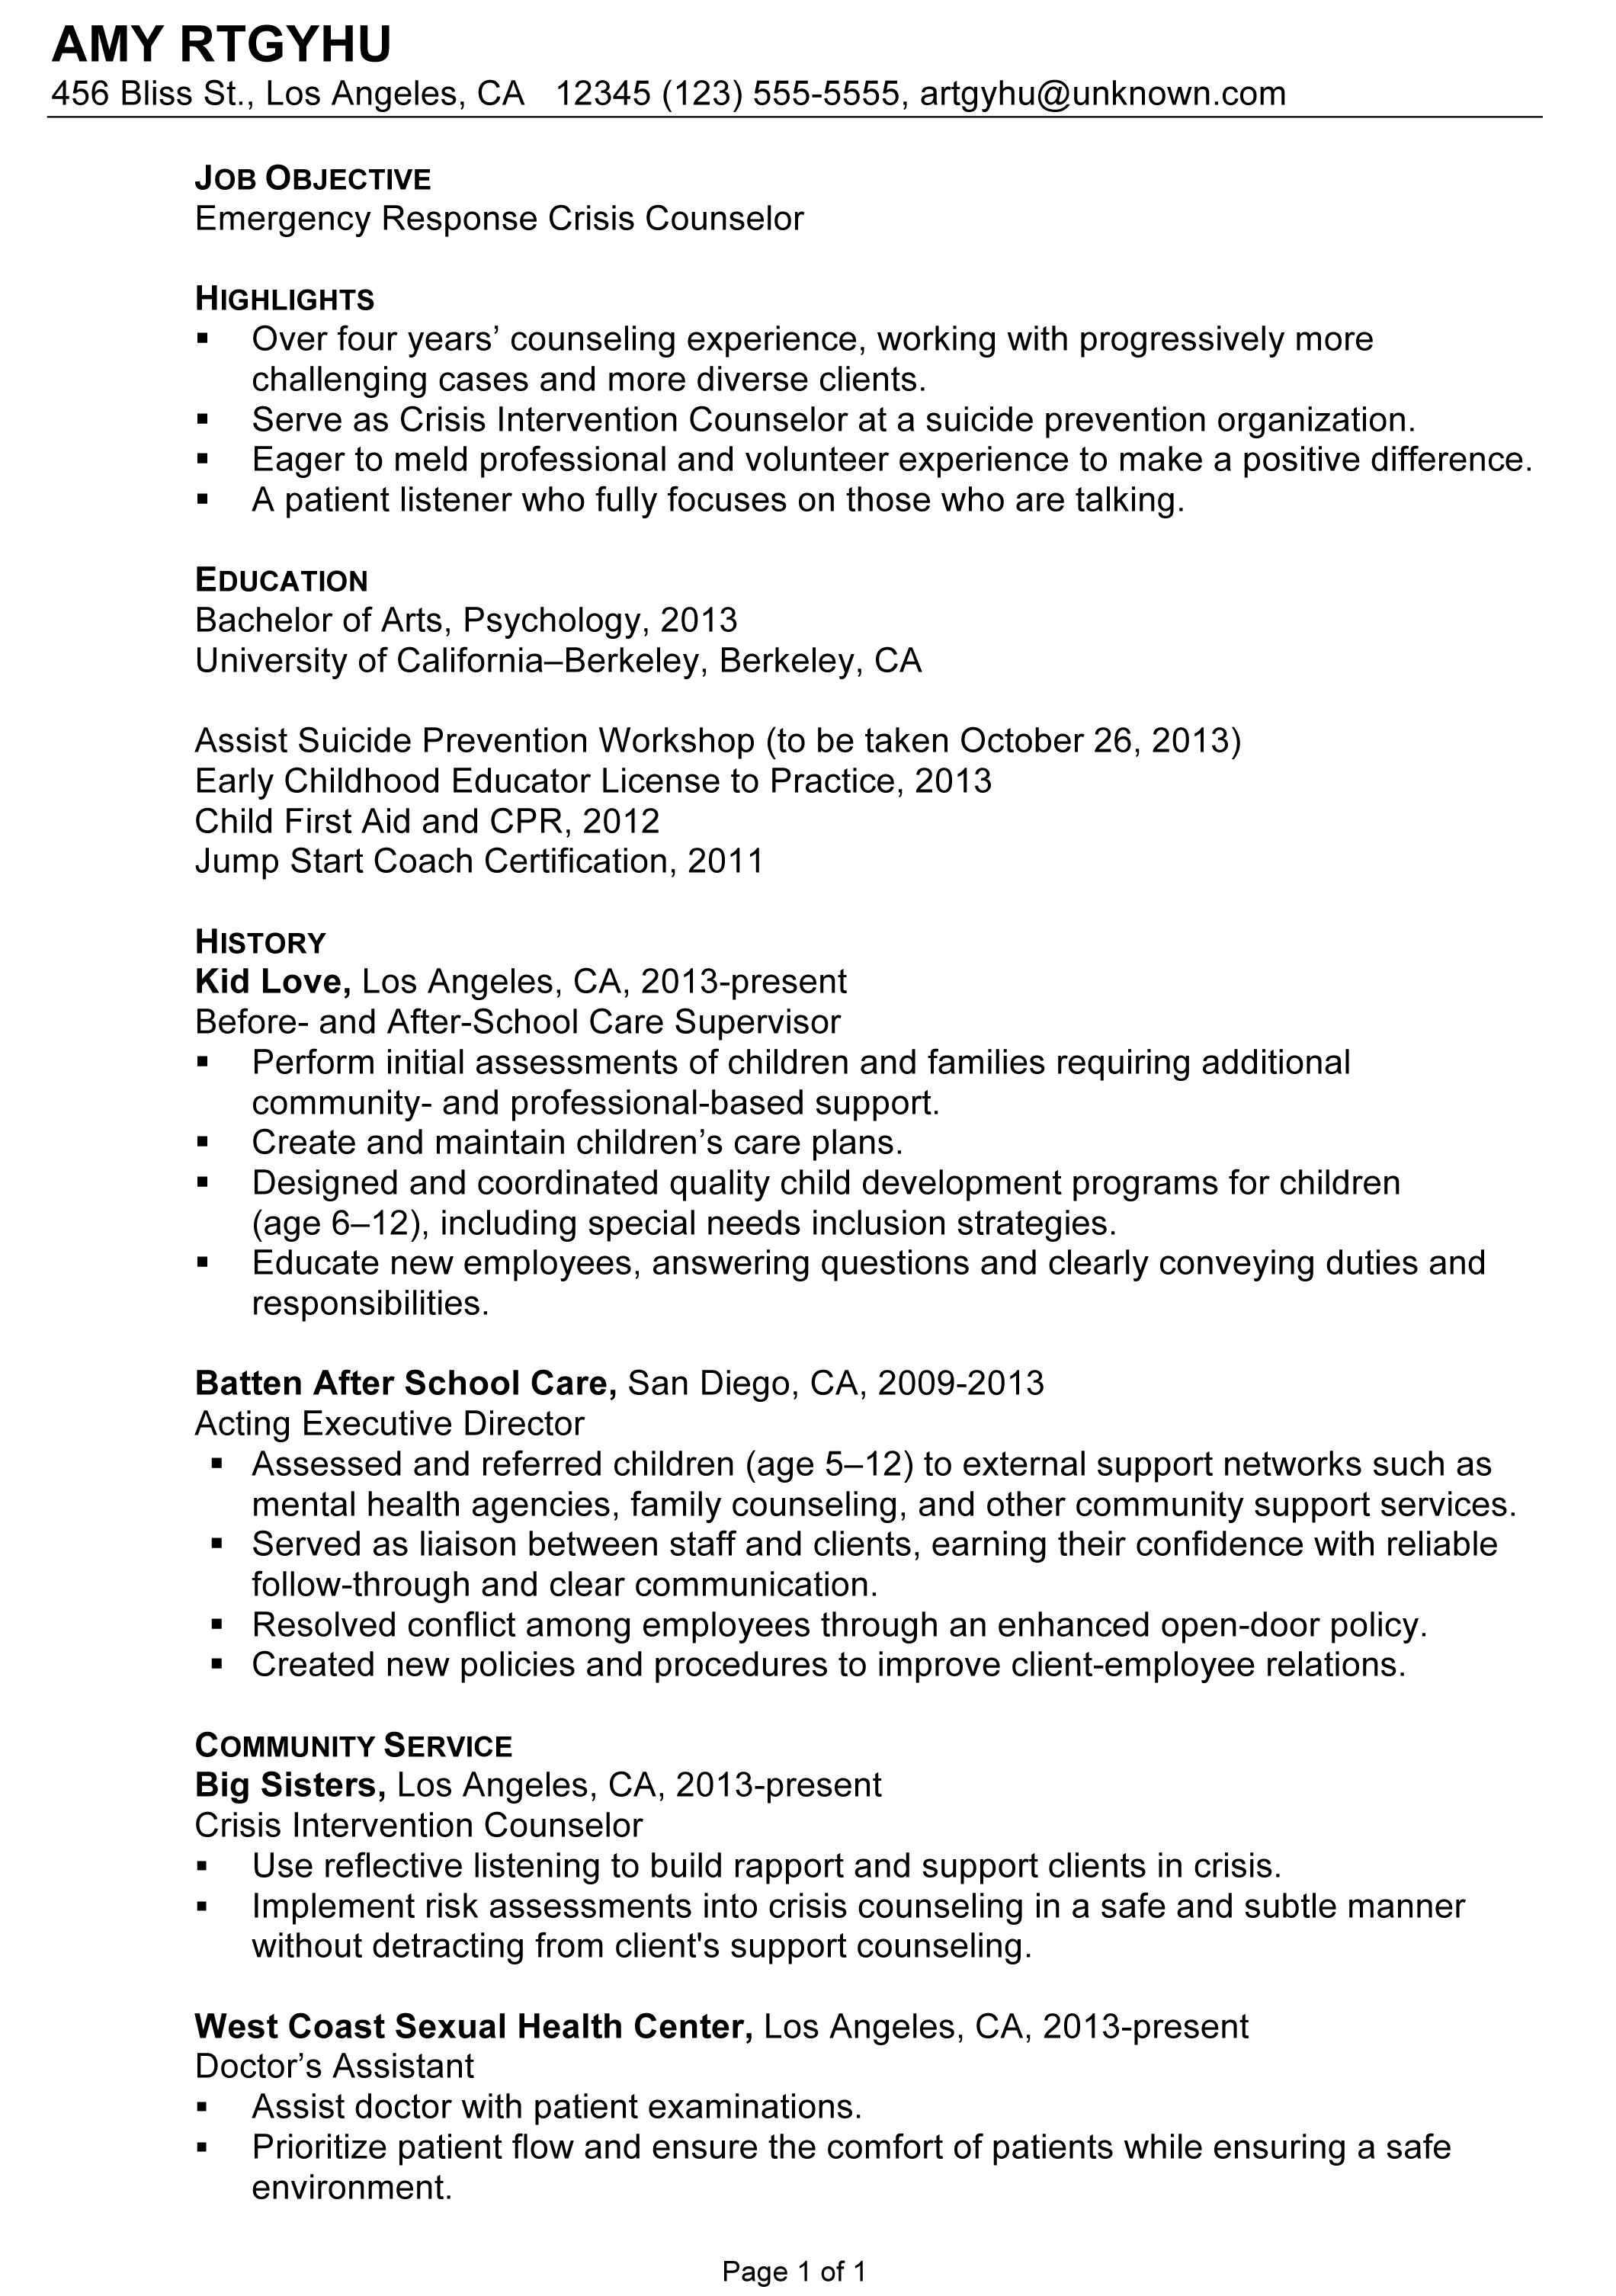 Job Objective On Resume Chronological Resume Sample Emergency Response Crisis Counselor